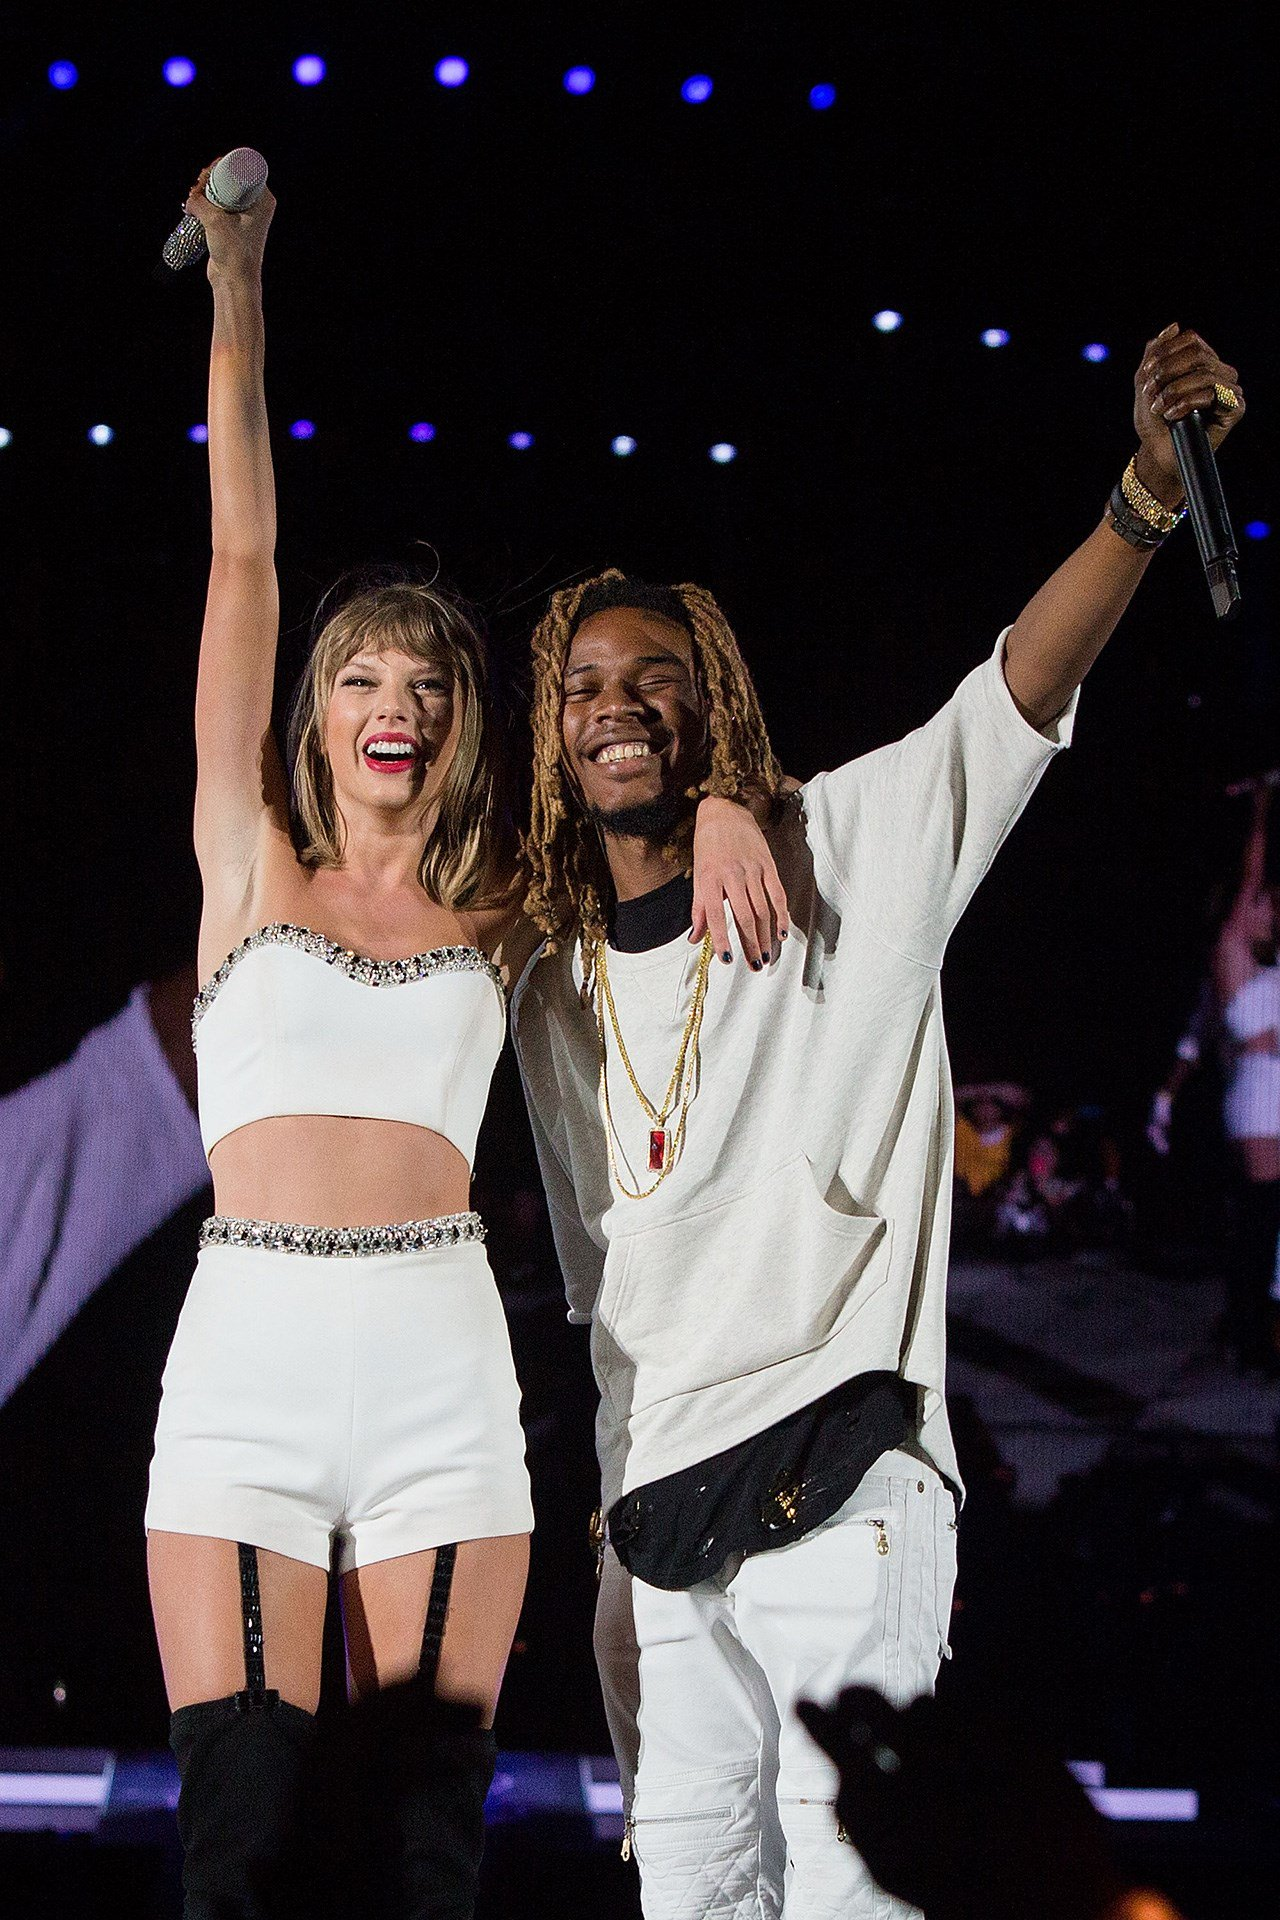 Is Fetty Wap a feminist? Five things to know about hip hop's rising star https://t.co/at07ILNeO6 https://t.co/E2J6UEkFYl